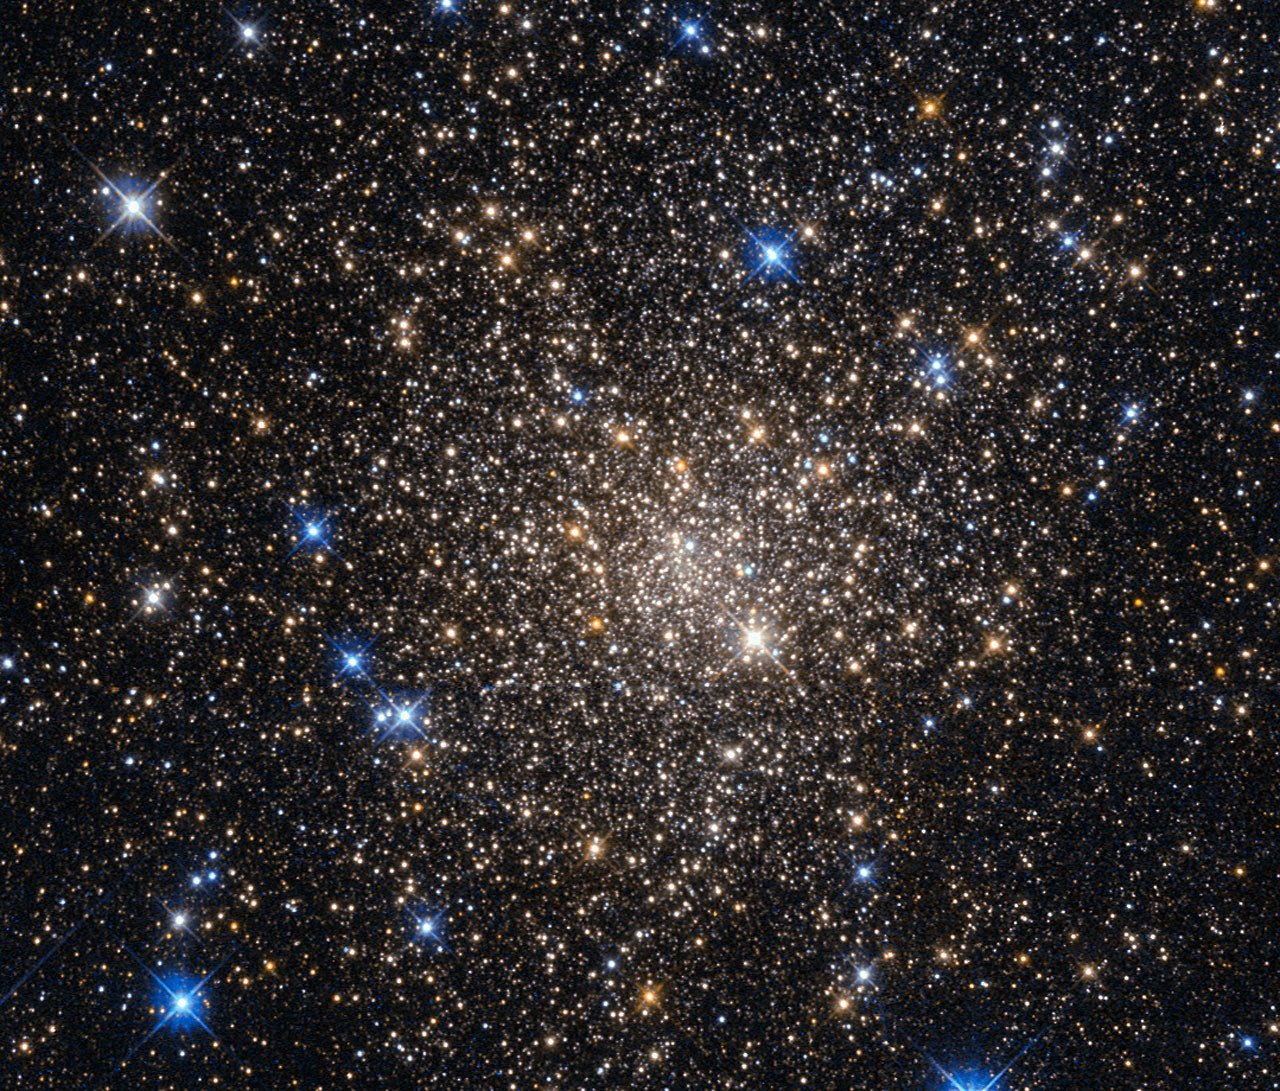 Globular cluster Terzan 1 in the constellation Scorpius. Image credit: NASA & ESA, Acknowledgement: Judy Schmidt.